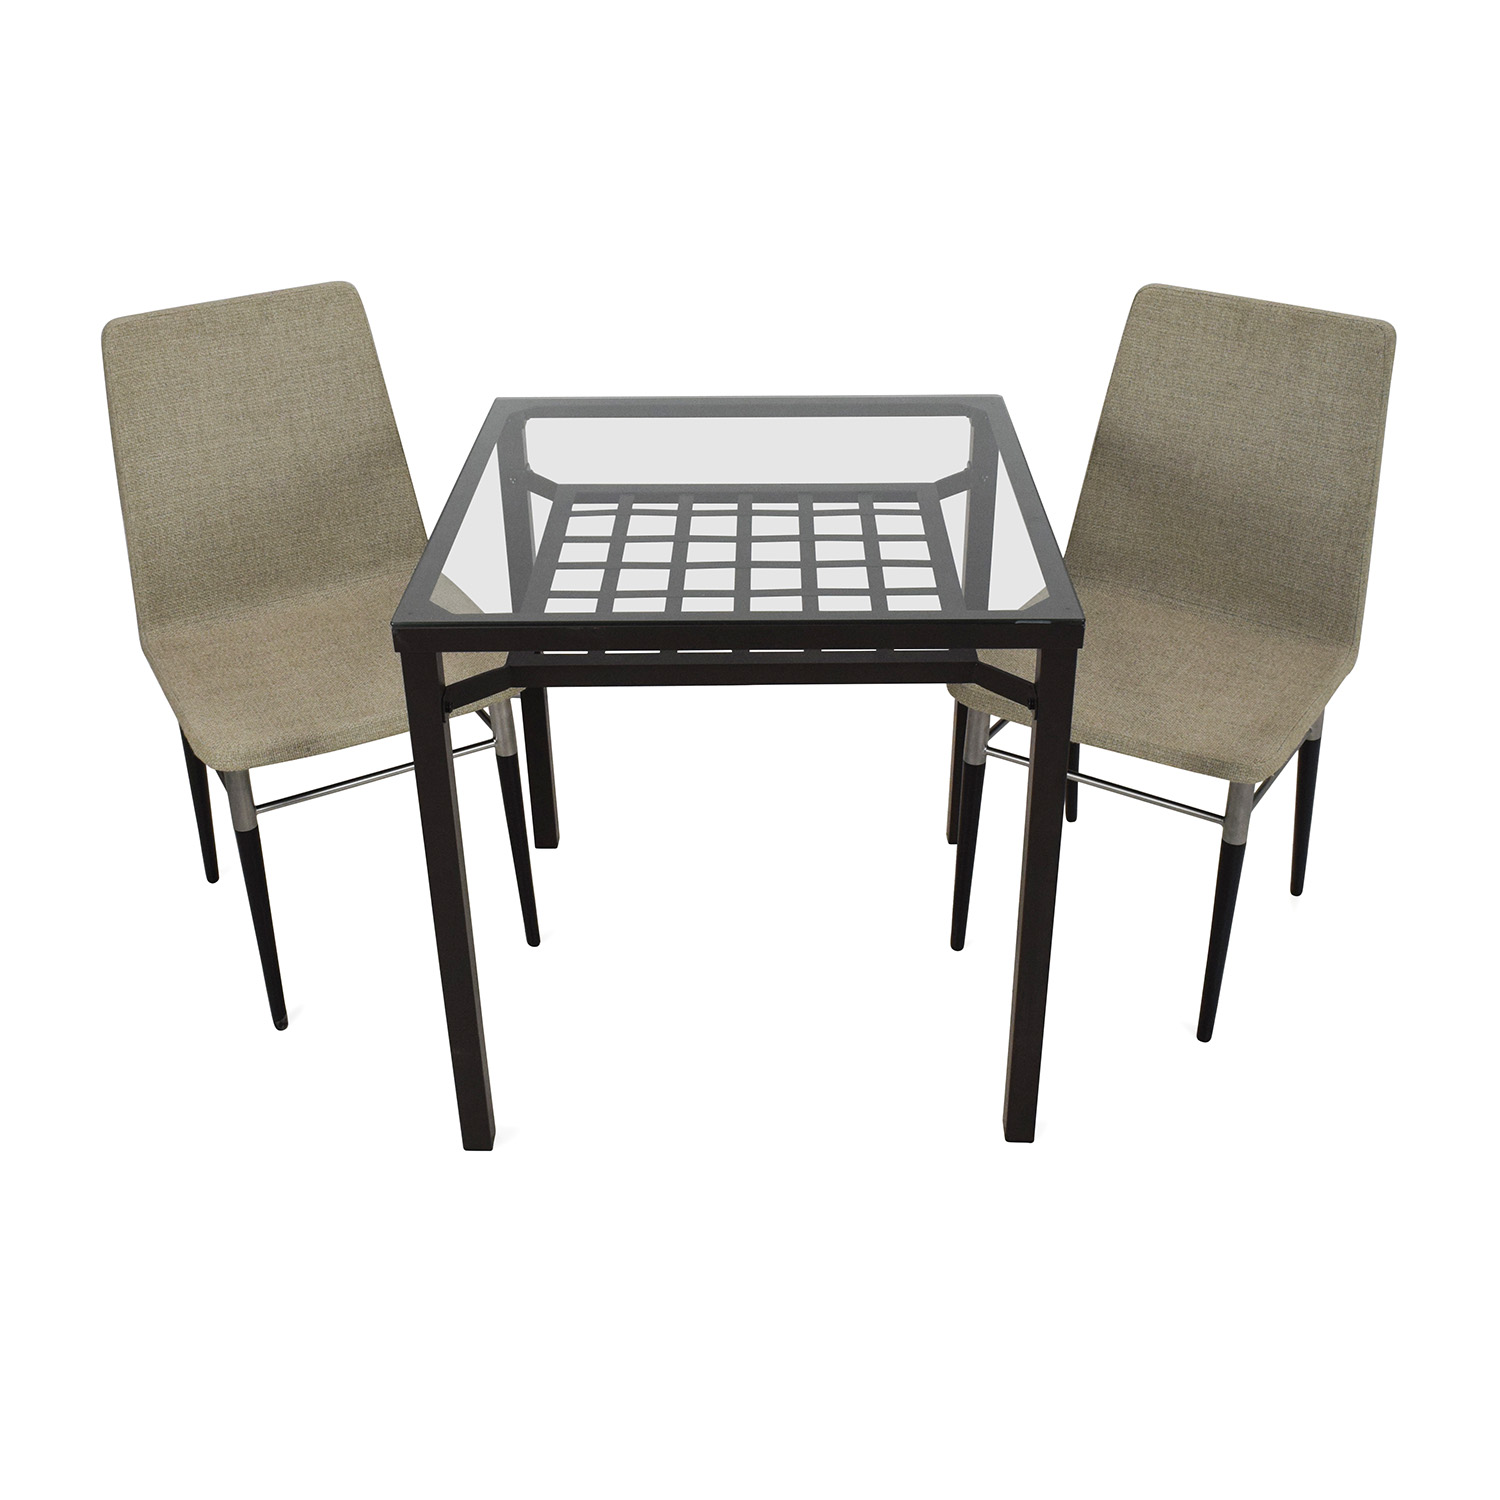 metal dining chairs ikea lightweight backpacking chair 30 off scroll and glass top table tables